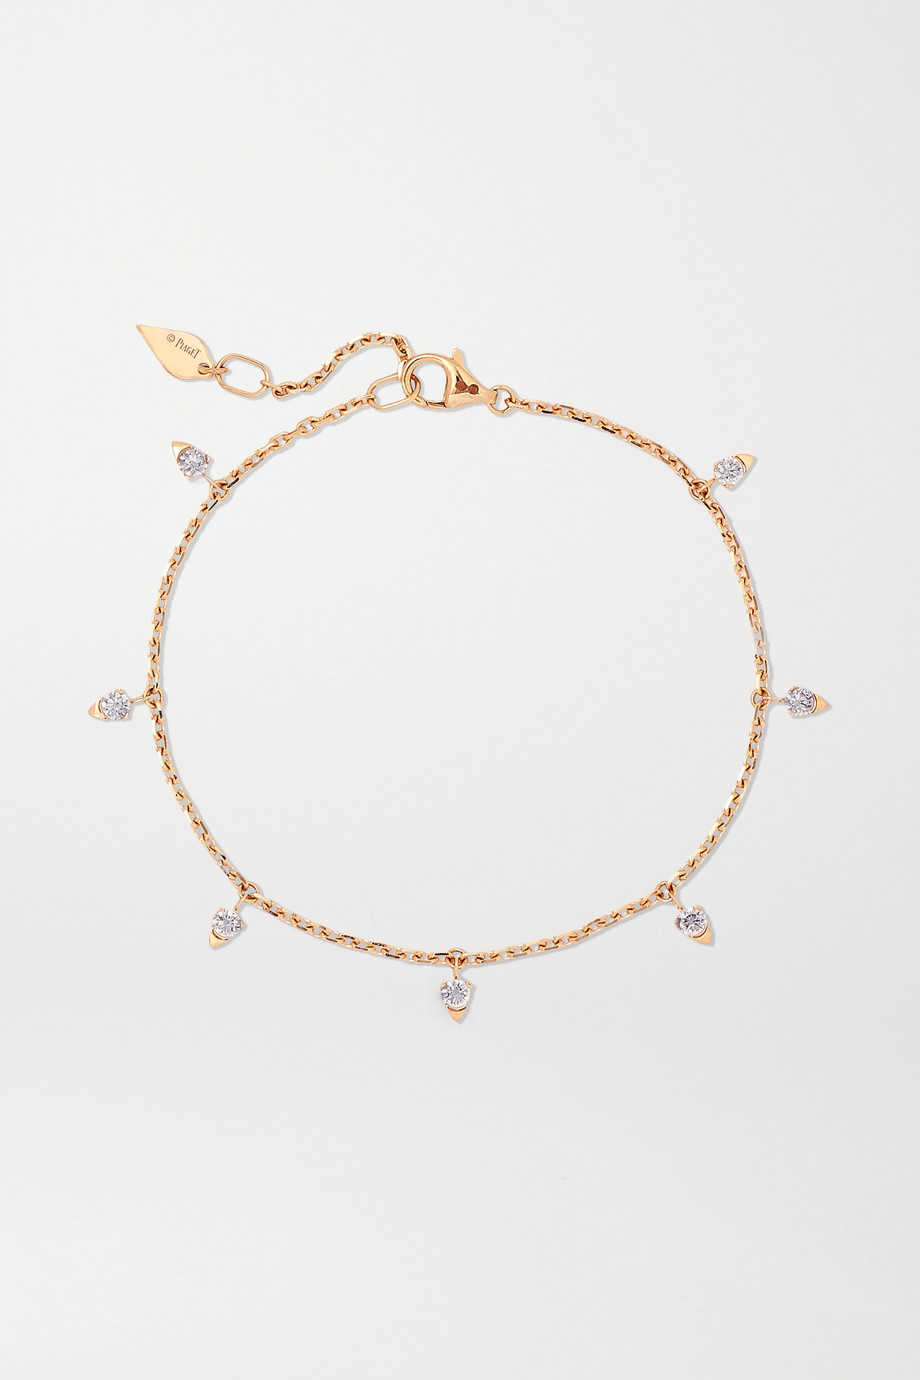 Piaget Sunlight 18-karat rose gold diamond bracelet